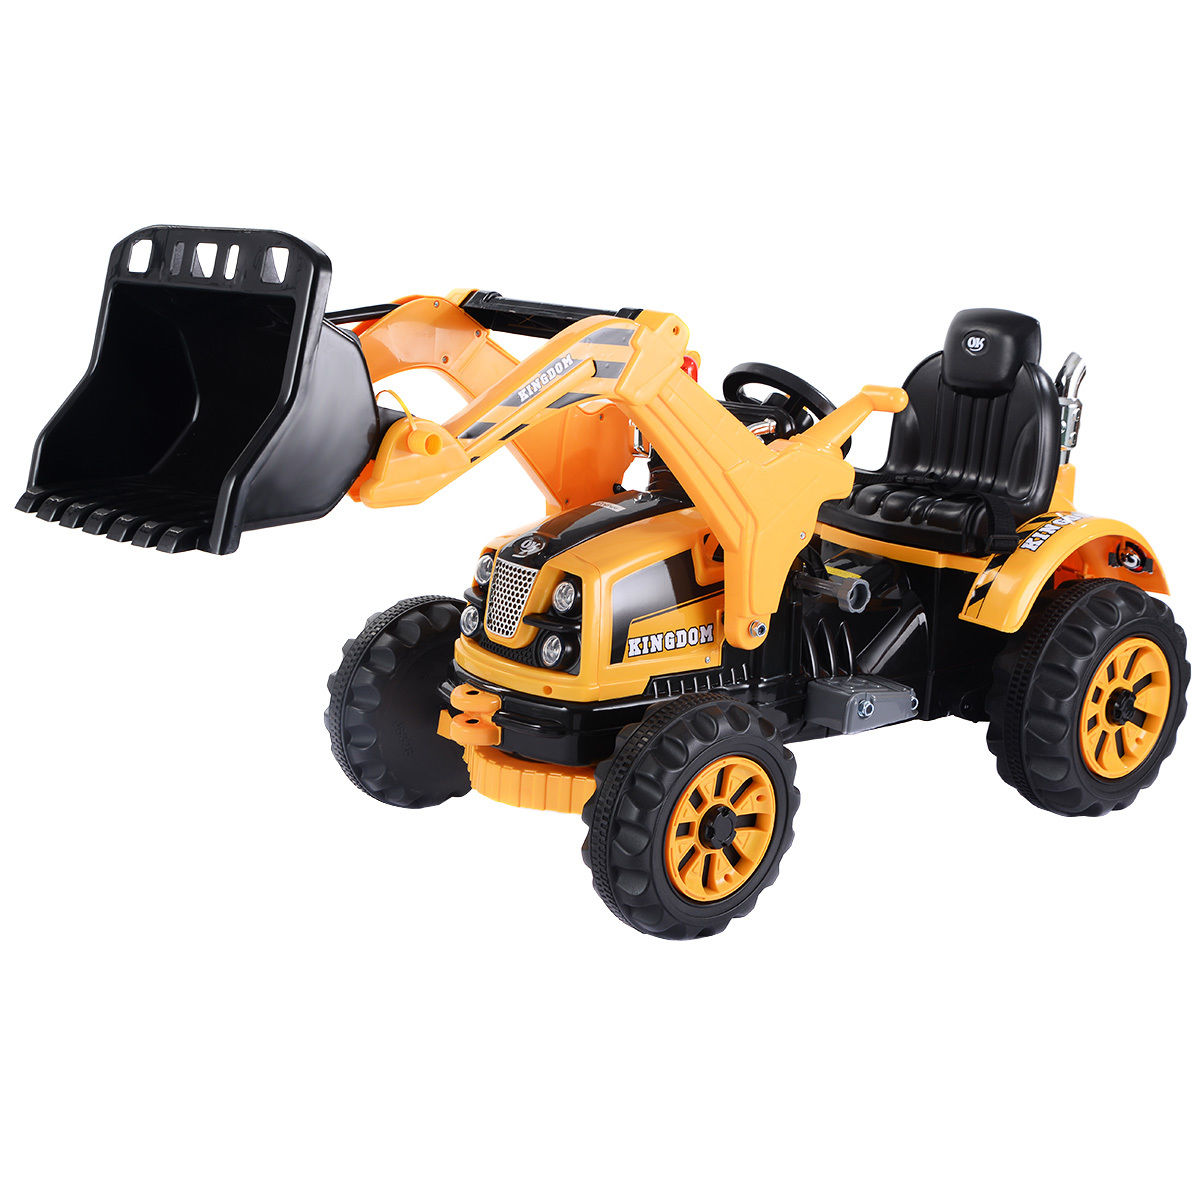 Costway 12V Battery Powered Kids Ride On Excavator Truck With Front Loader Digger Yellow